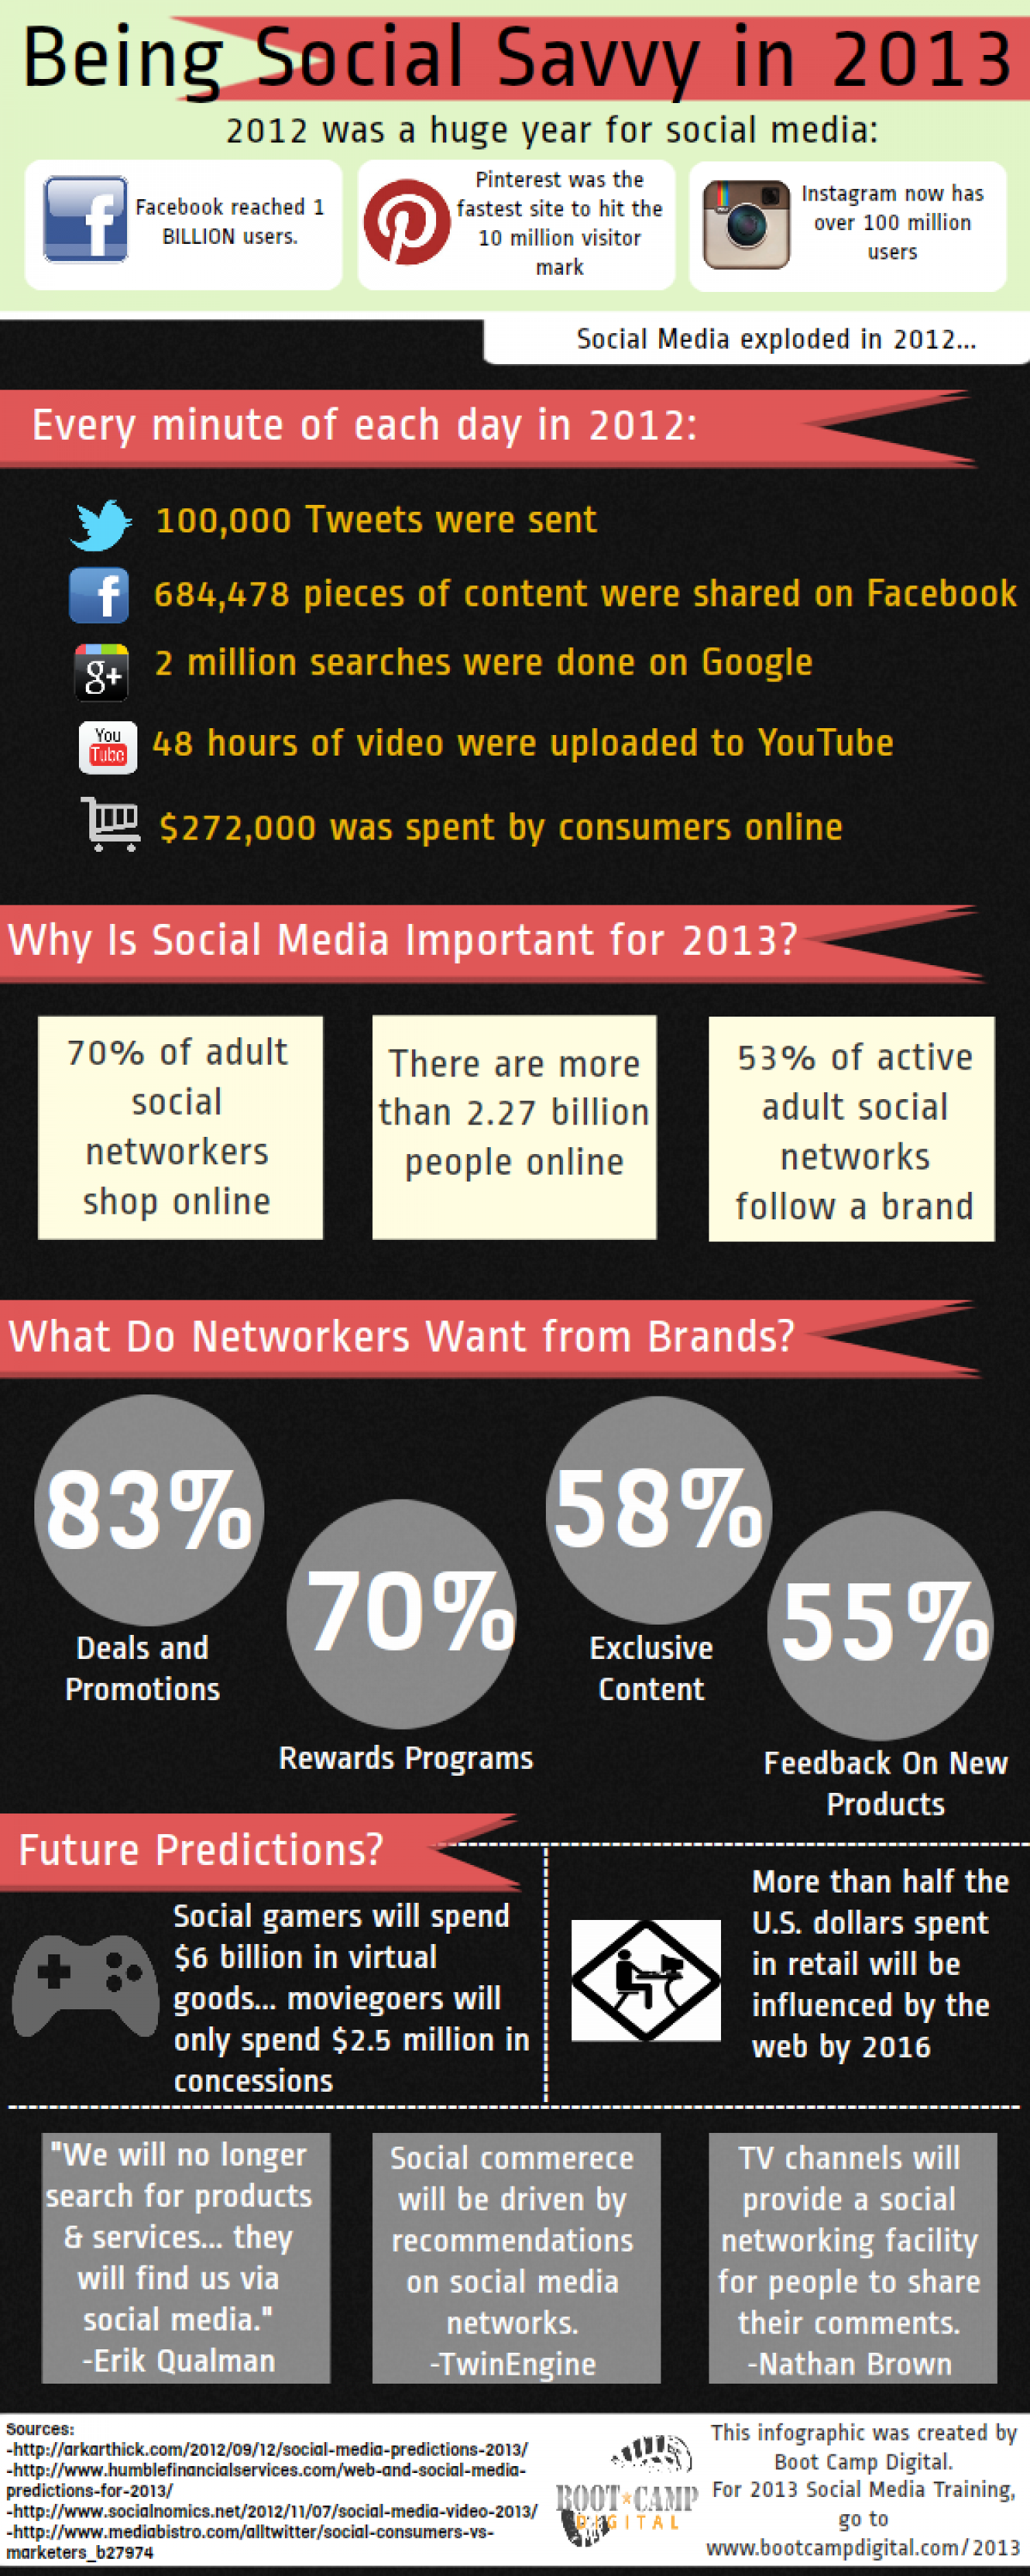 Being Social Savvy in 2013 Infographic